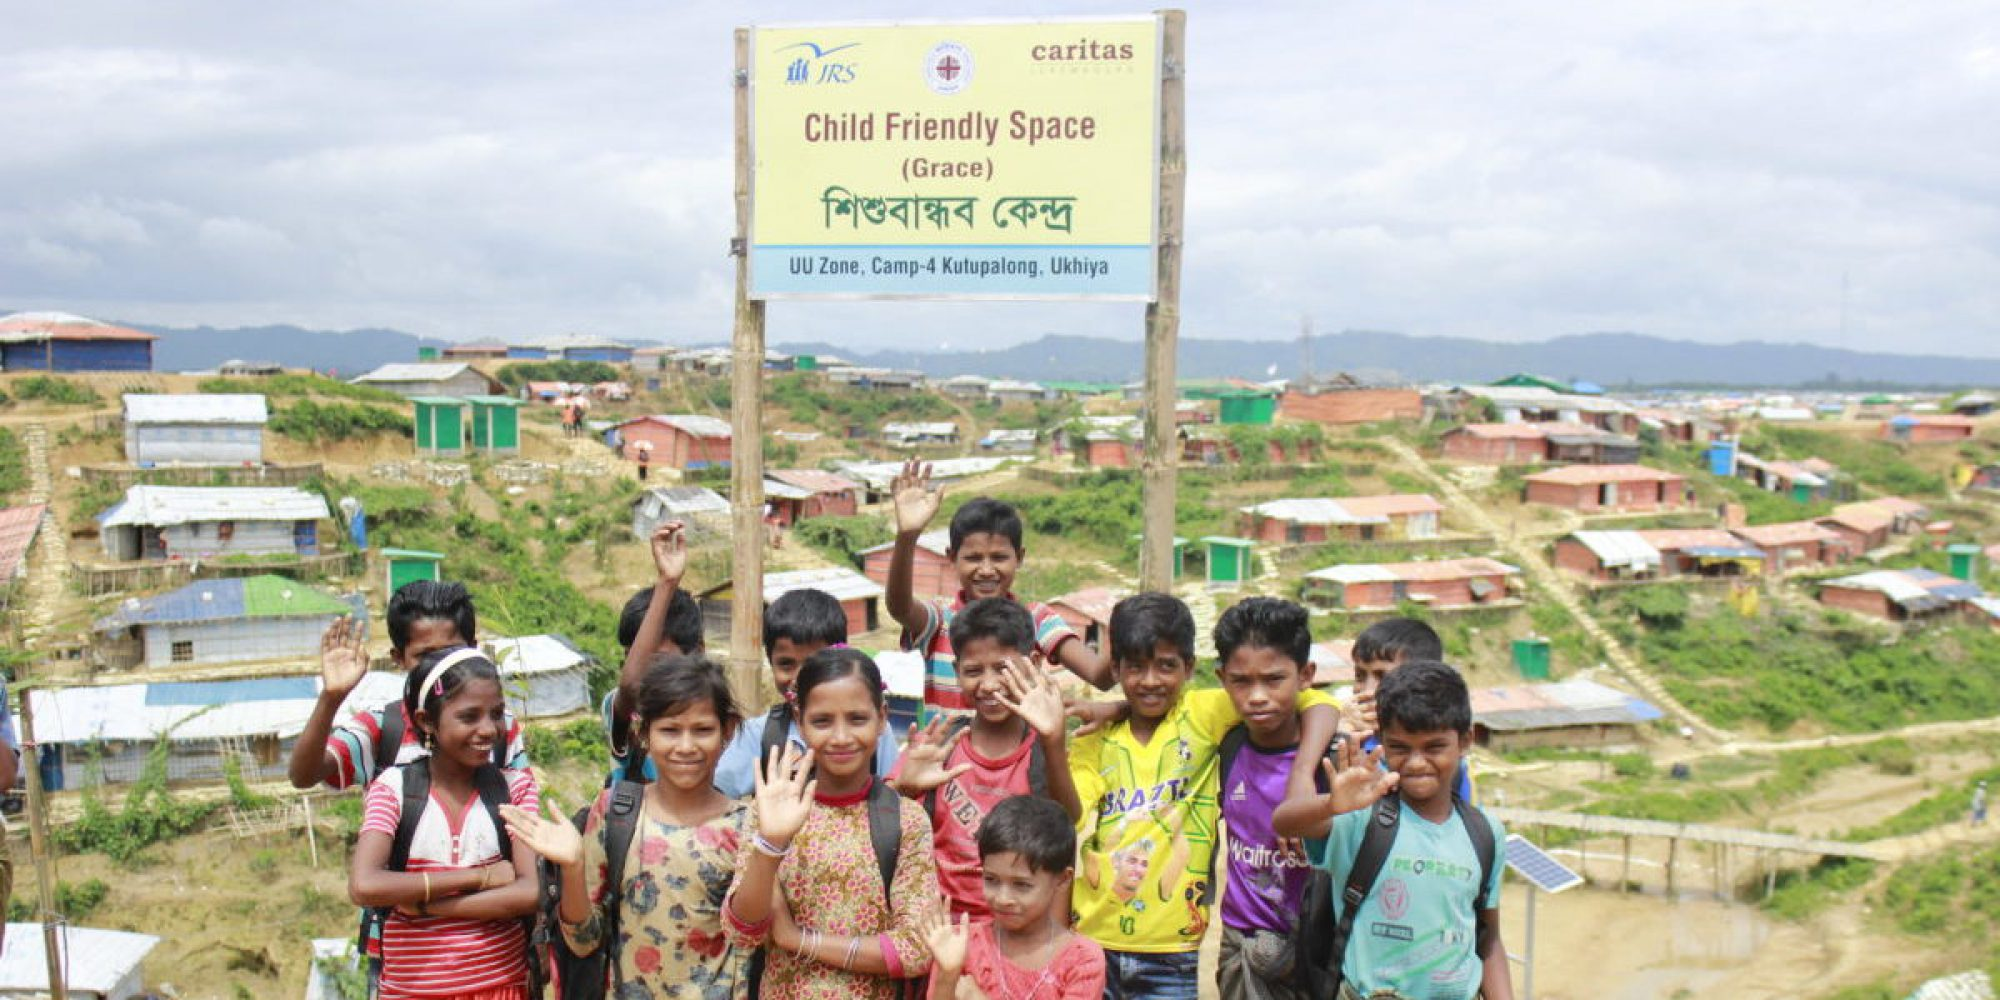 Group of children at the Child Friendly Spaces (CFS) run by JRS and Caritas in the Kutupalong camp, Cox's Bazar, Bangladesh.